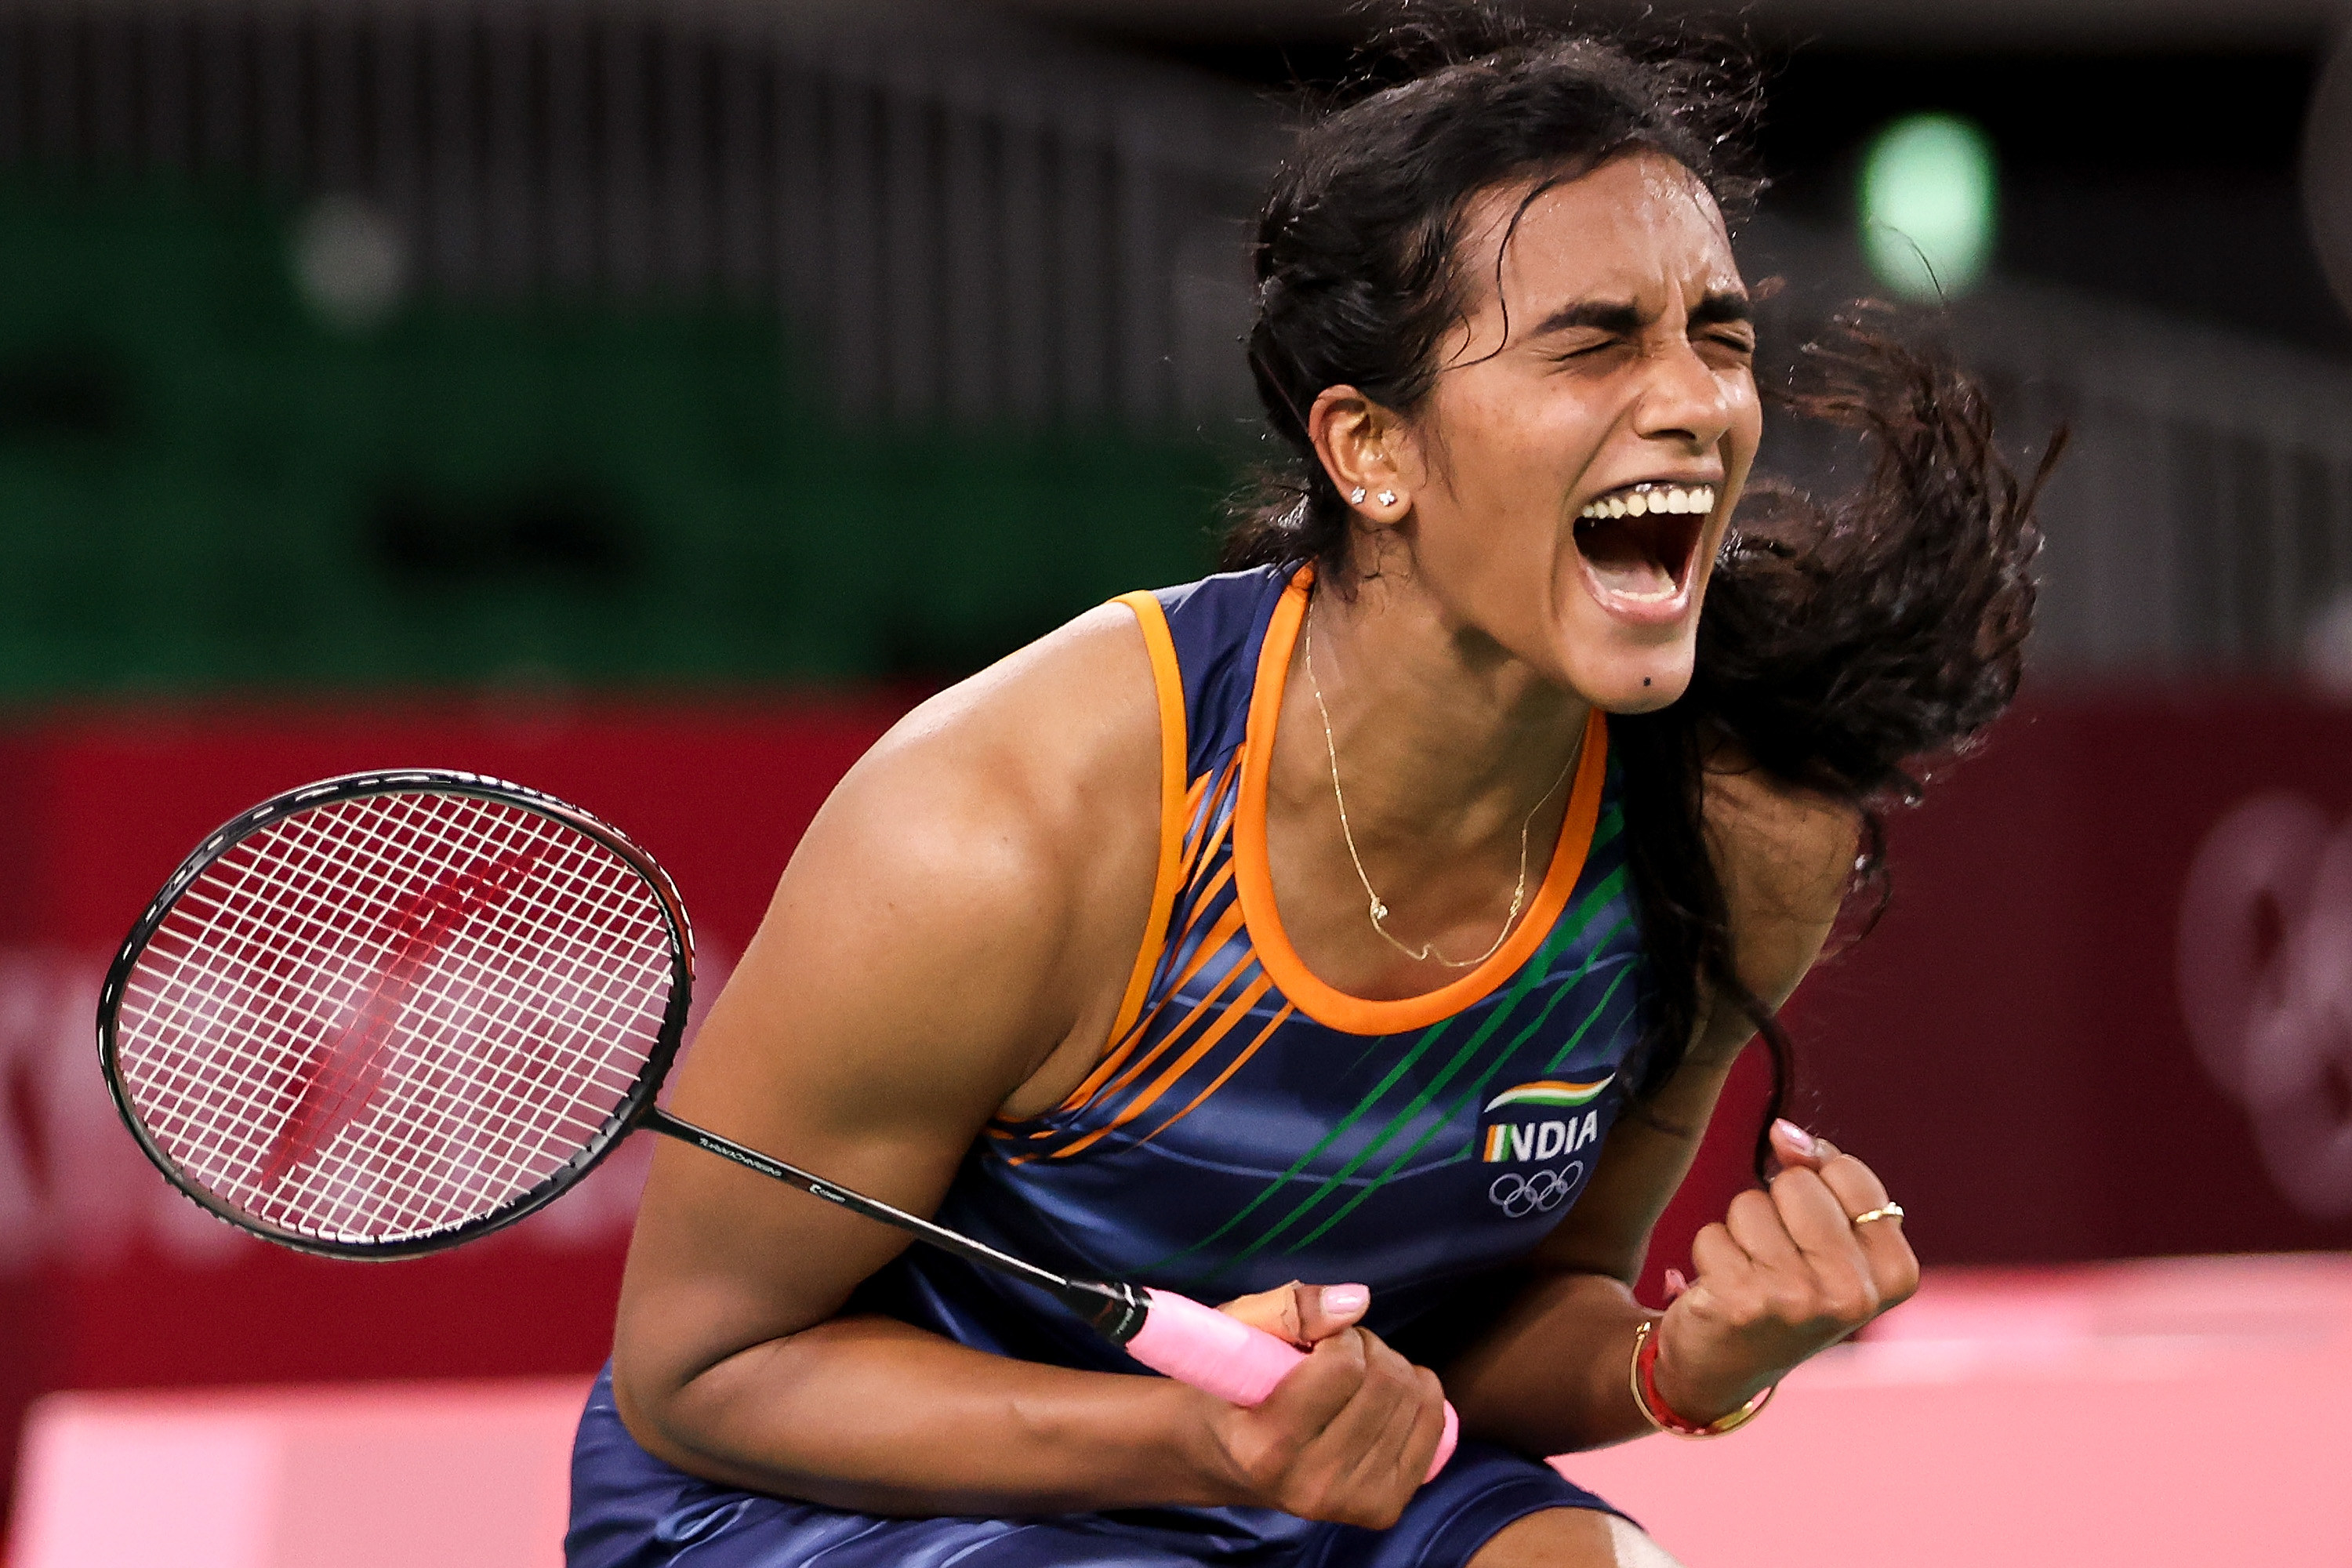 An Olympic tennis player shouts in celebration after winning a match